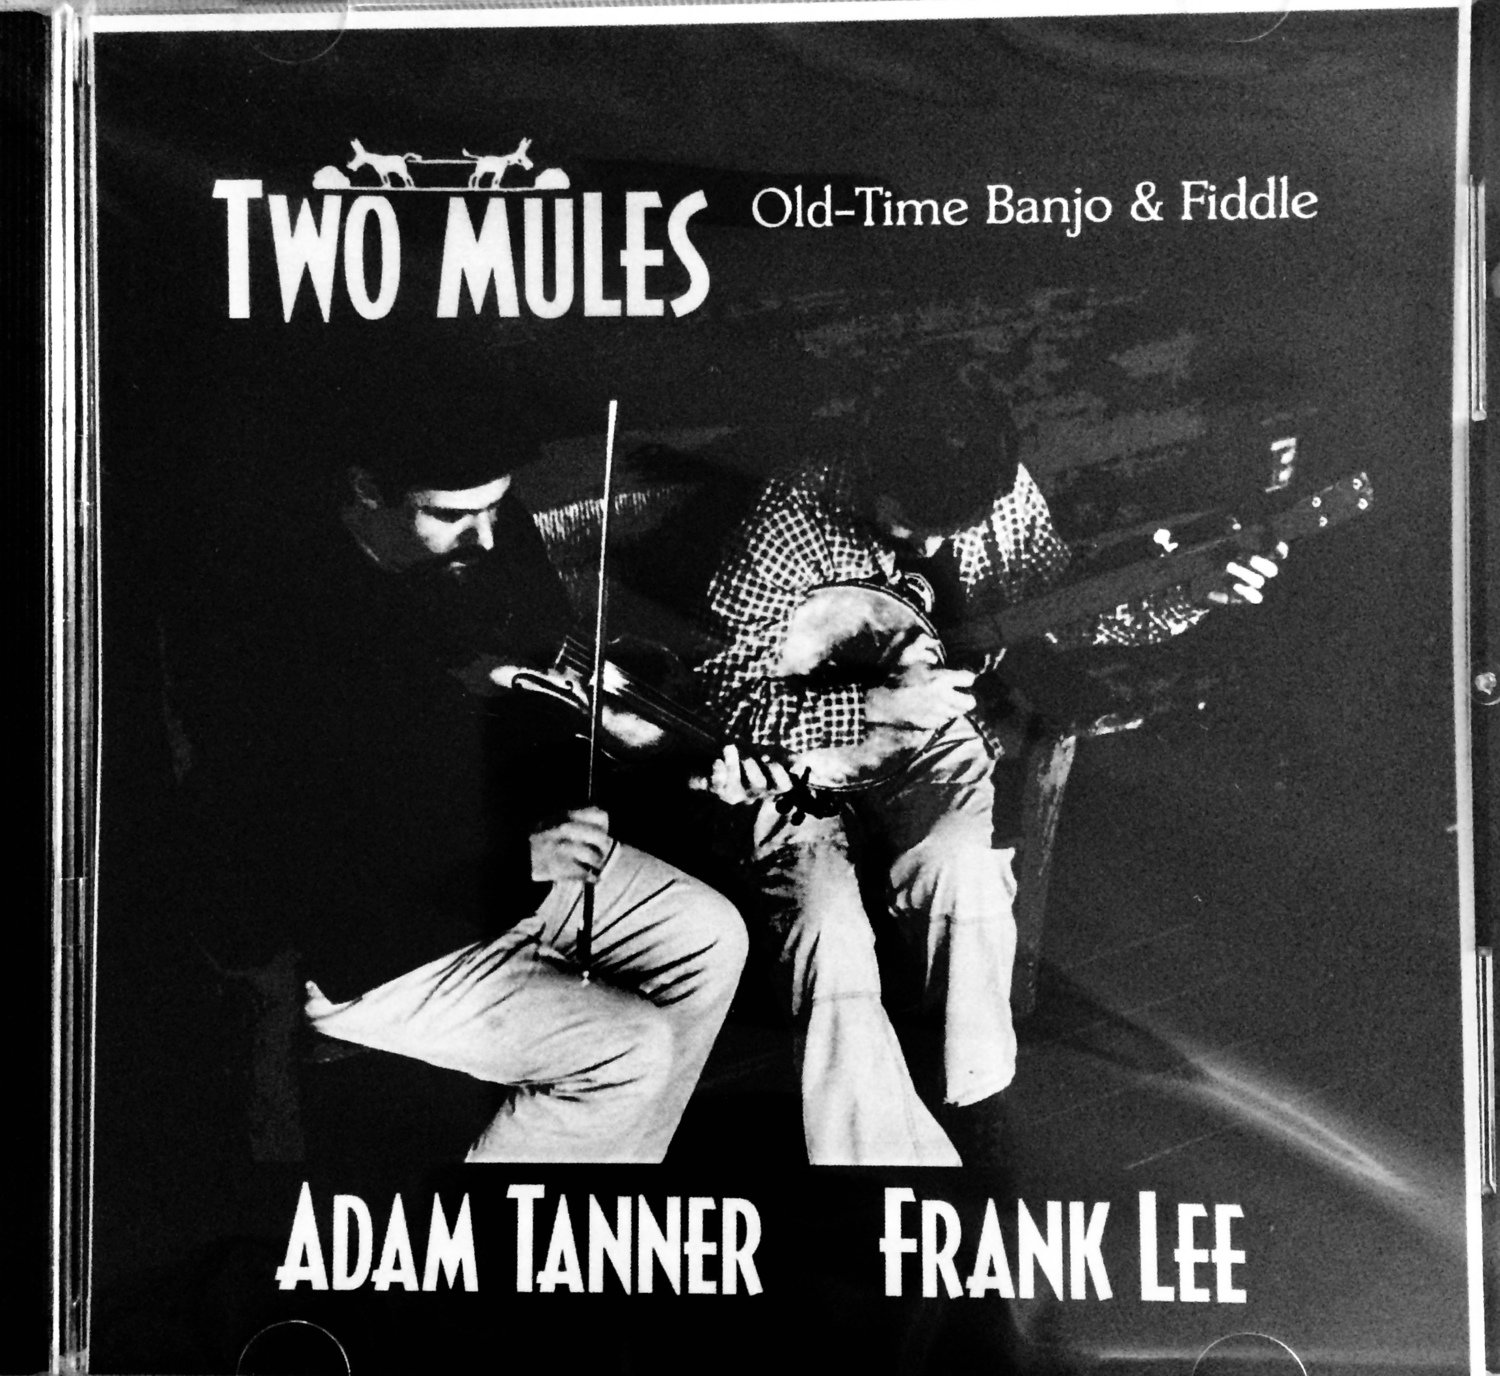 Two Mules - Adam Tanner & Frank Lee (2005)